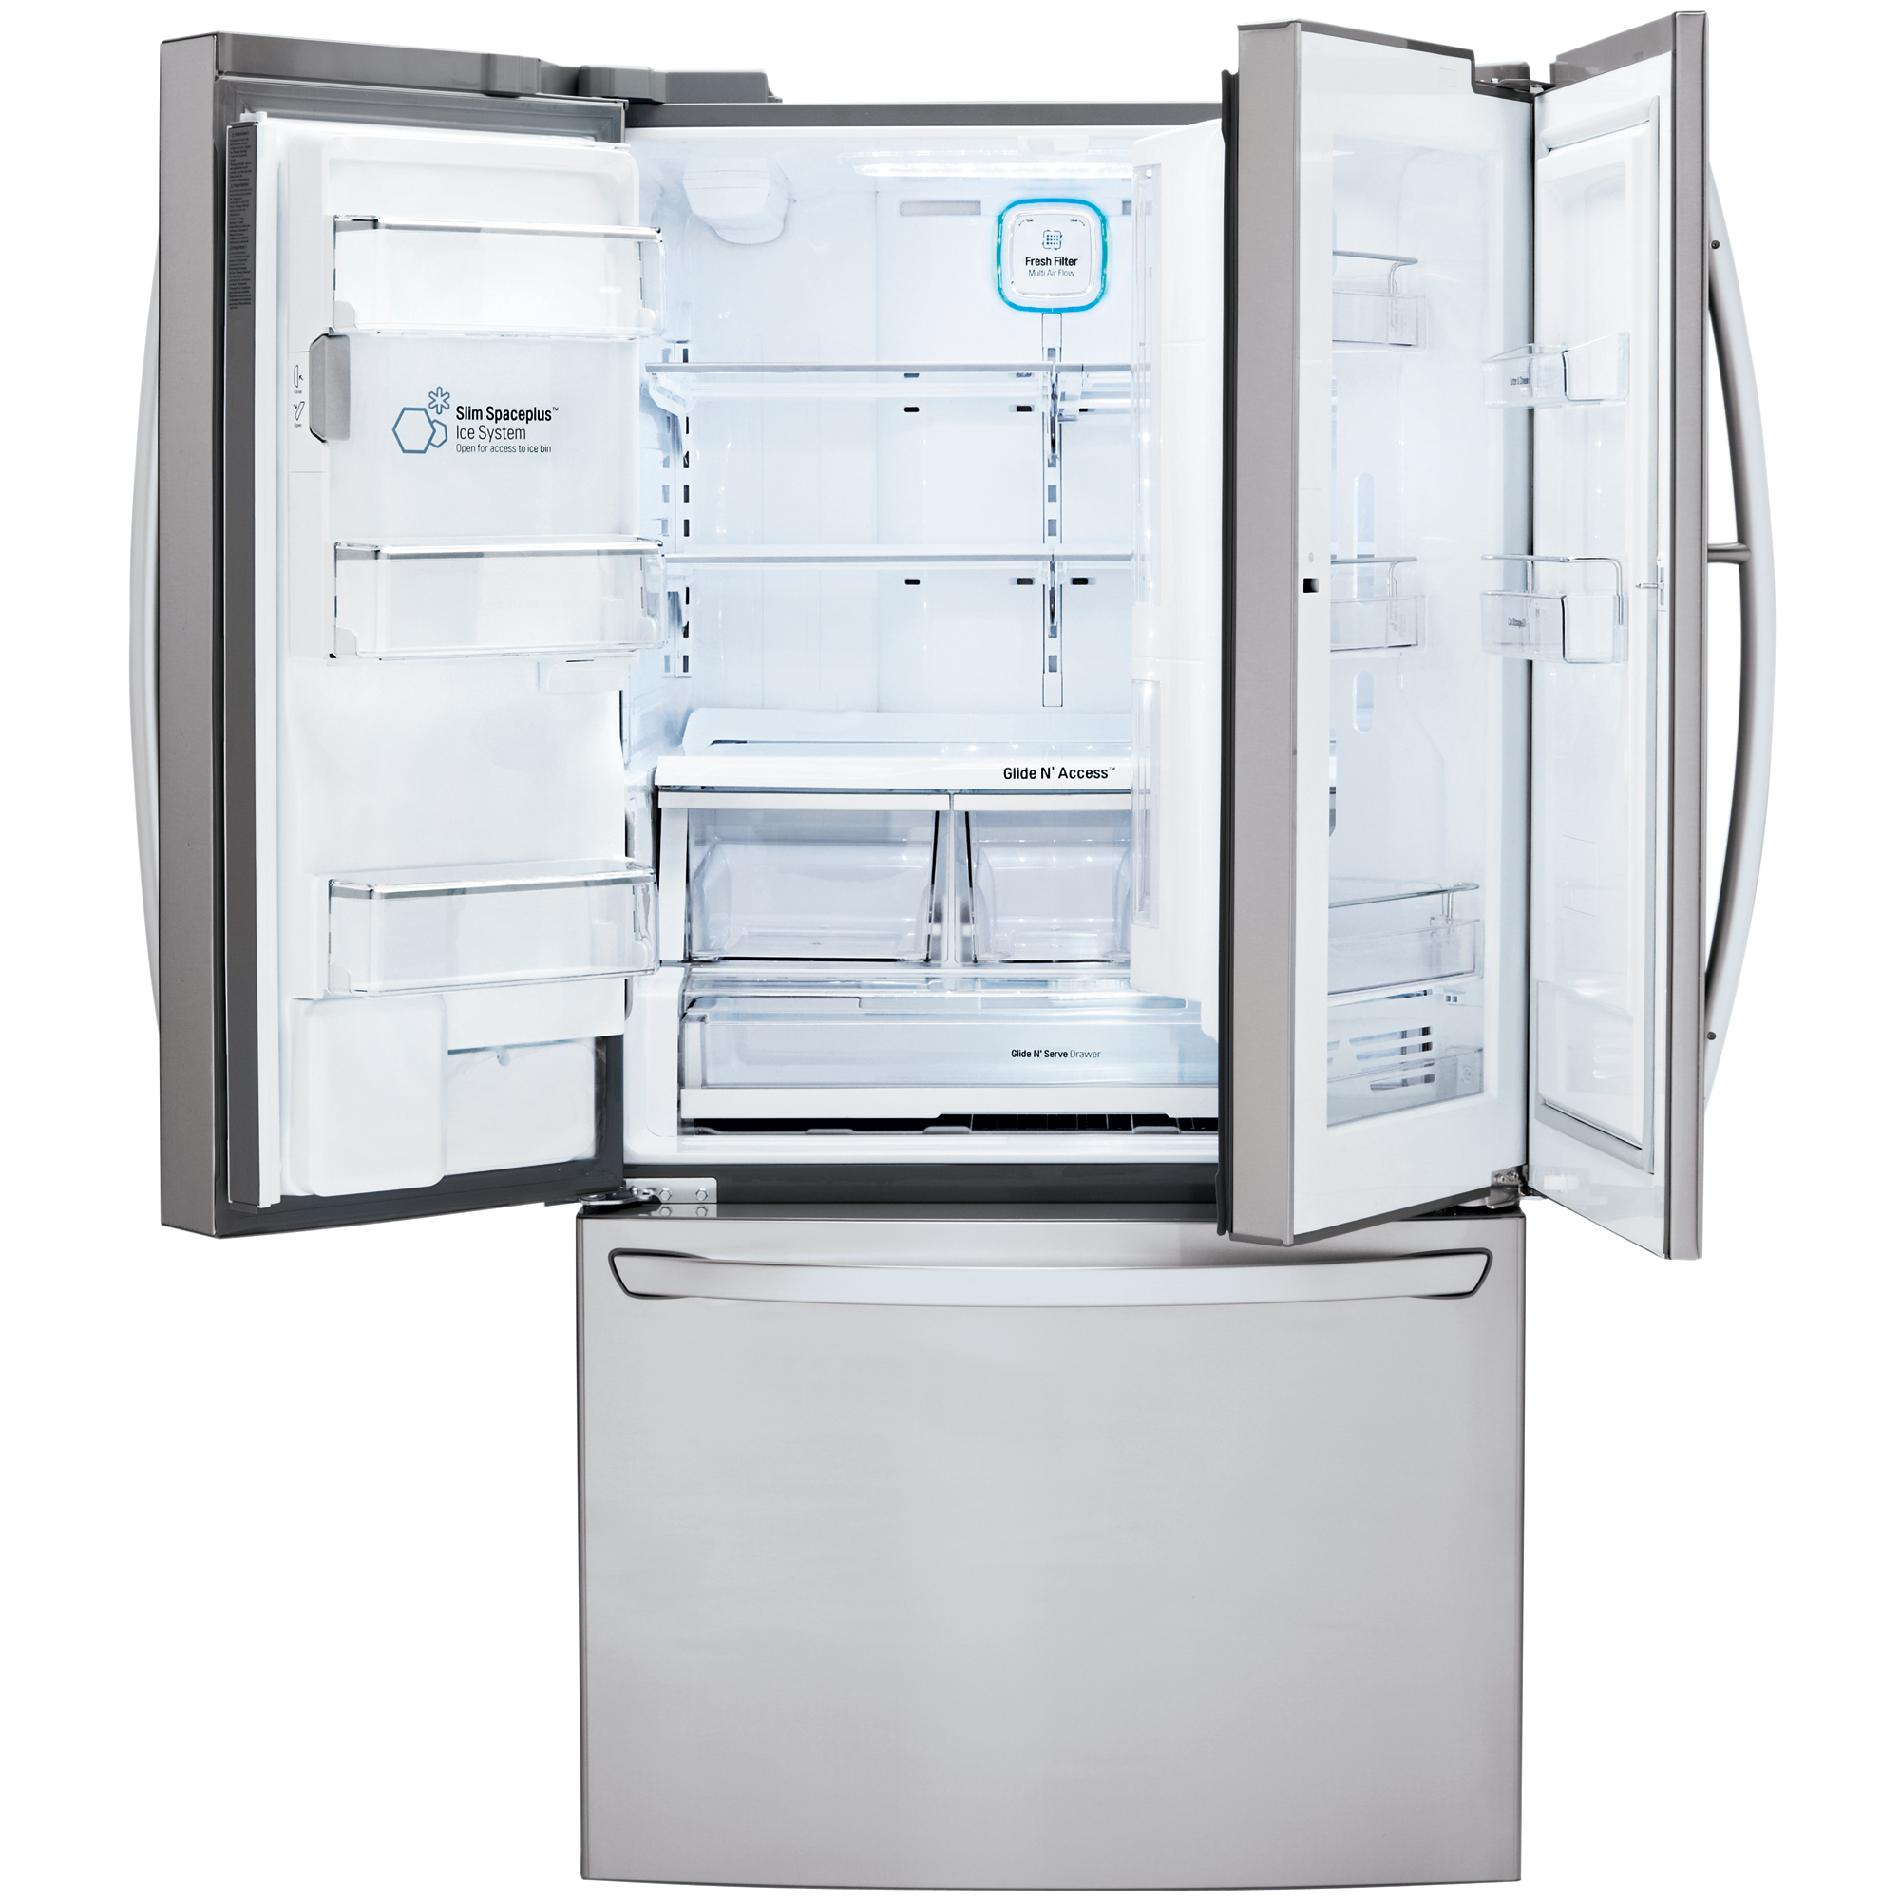 LG LFXS30766S 29.6 cu. ft. French Door Stainless Steel Refrigerator